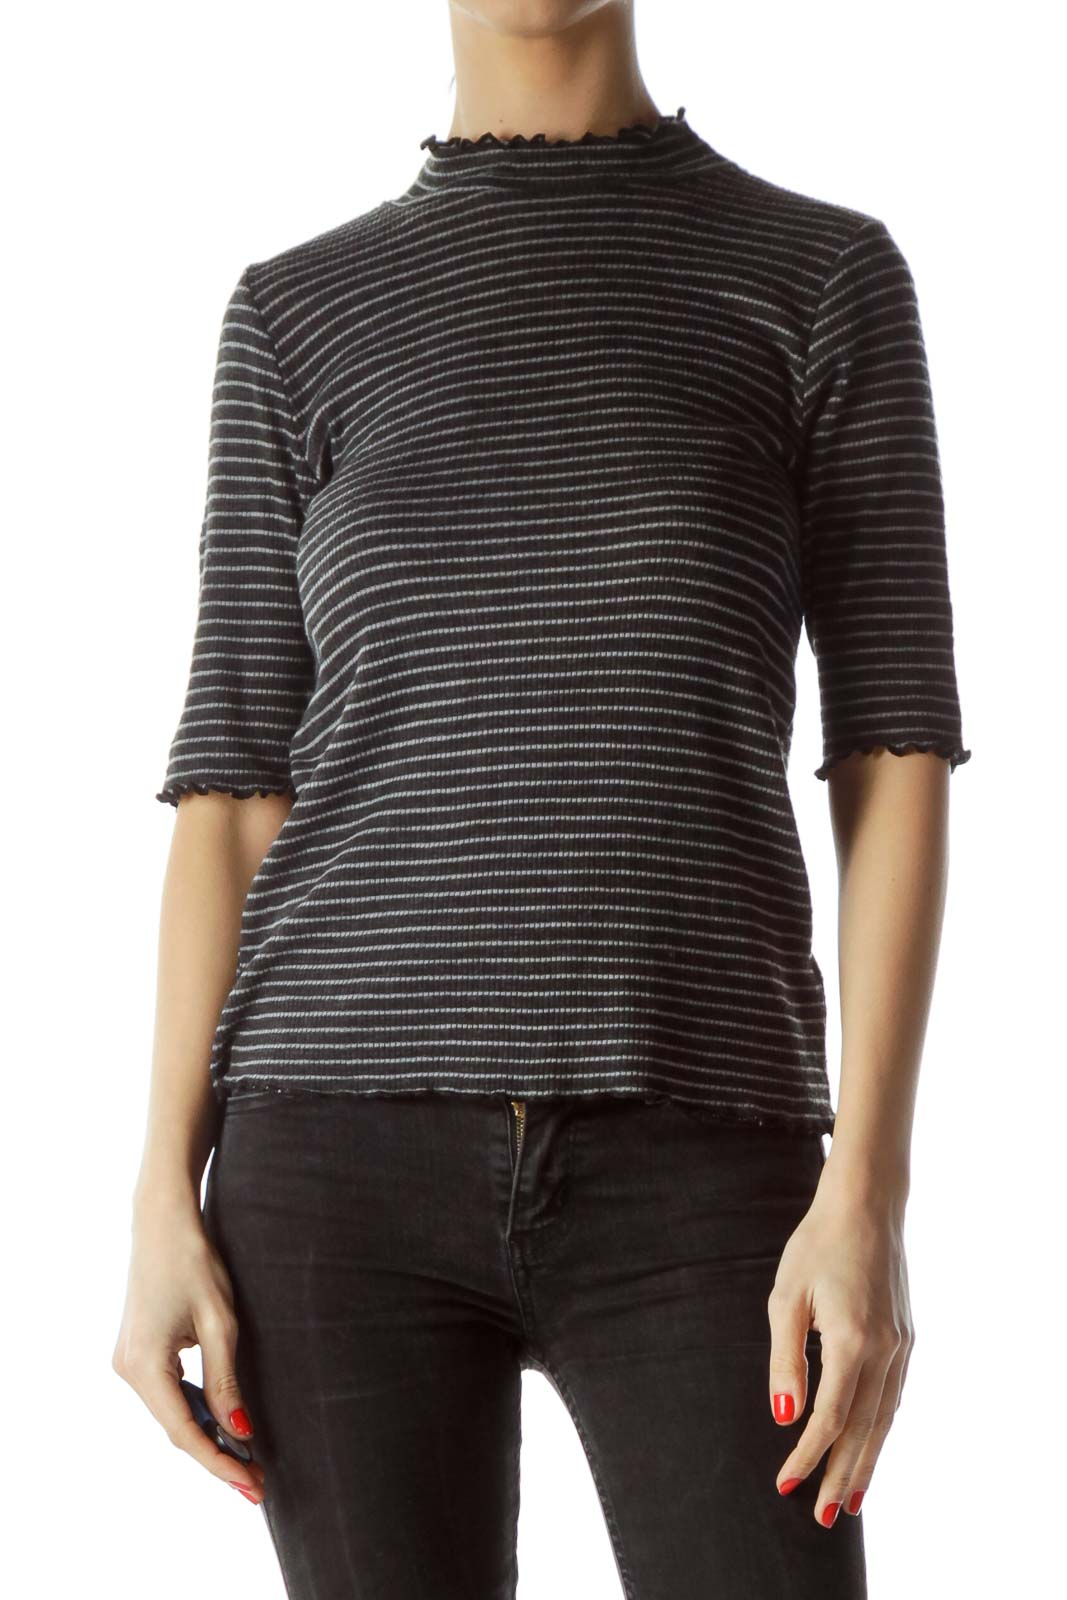 Black Gray Striped 3/4 Sleeve Knit Top Front